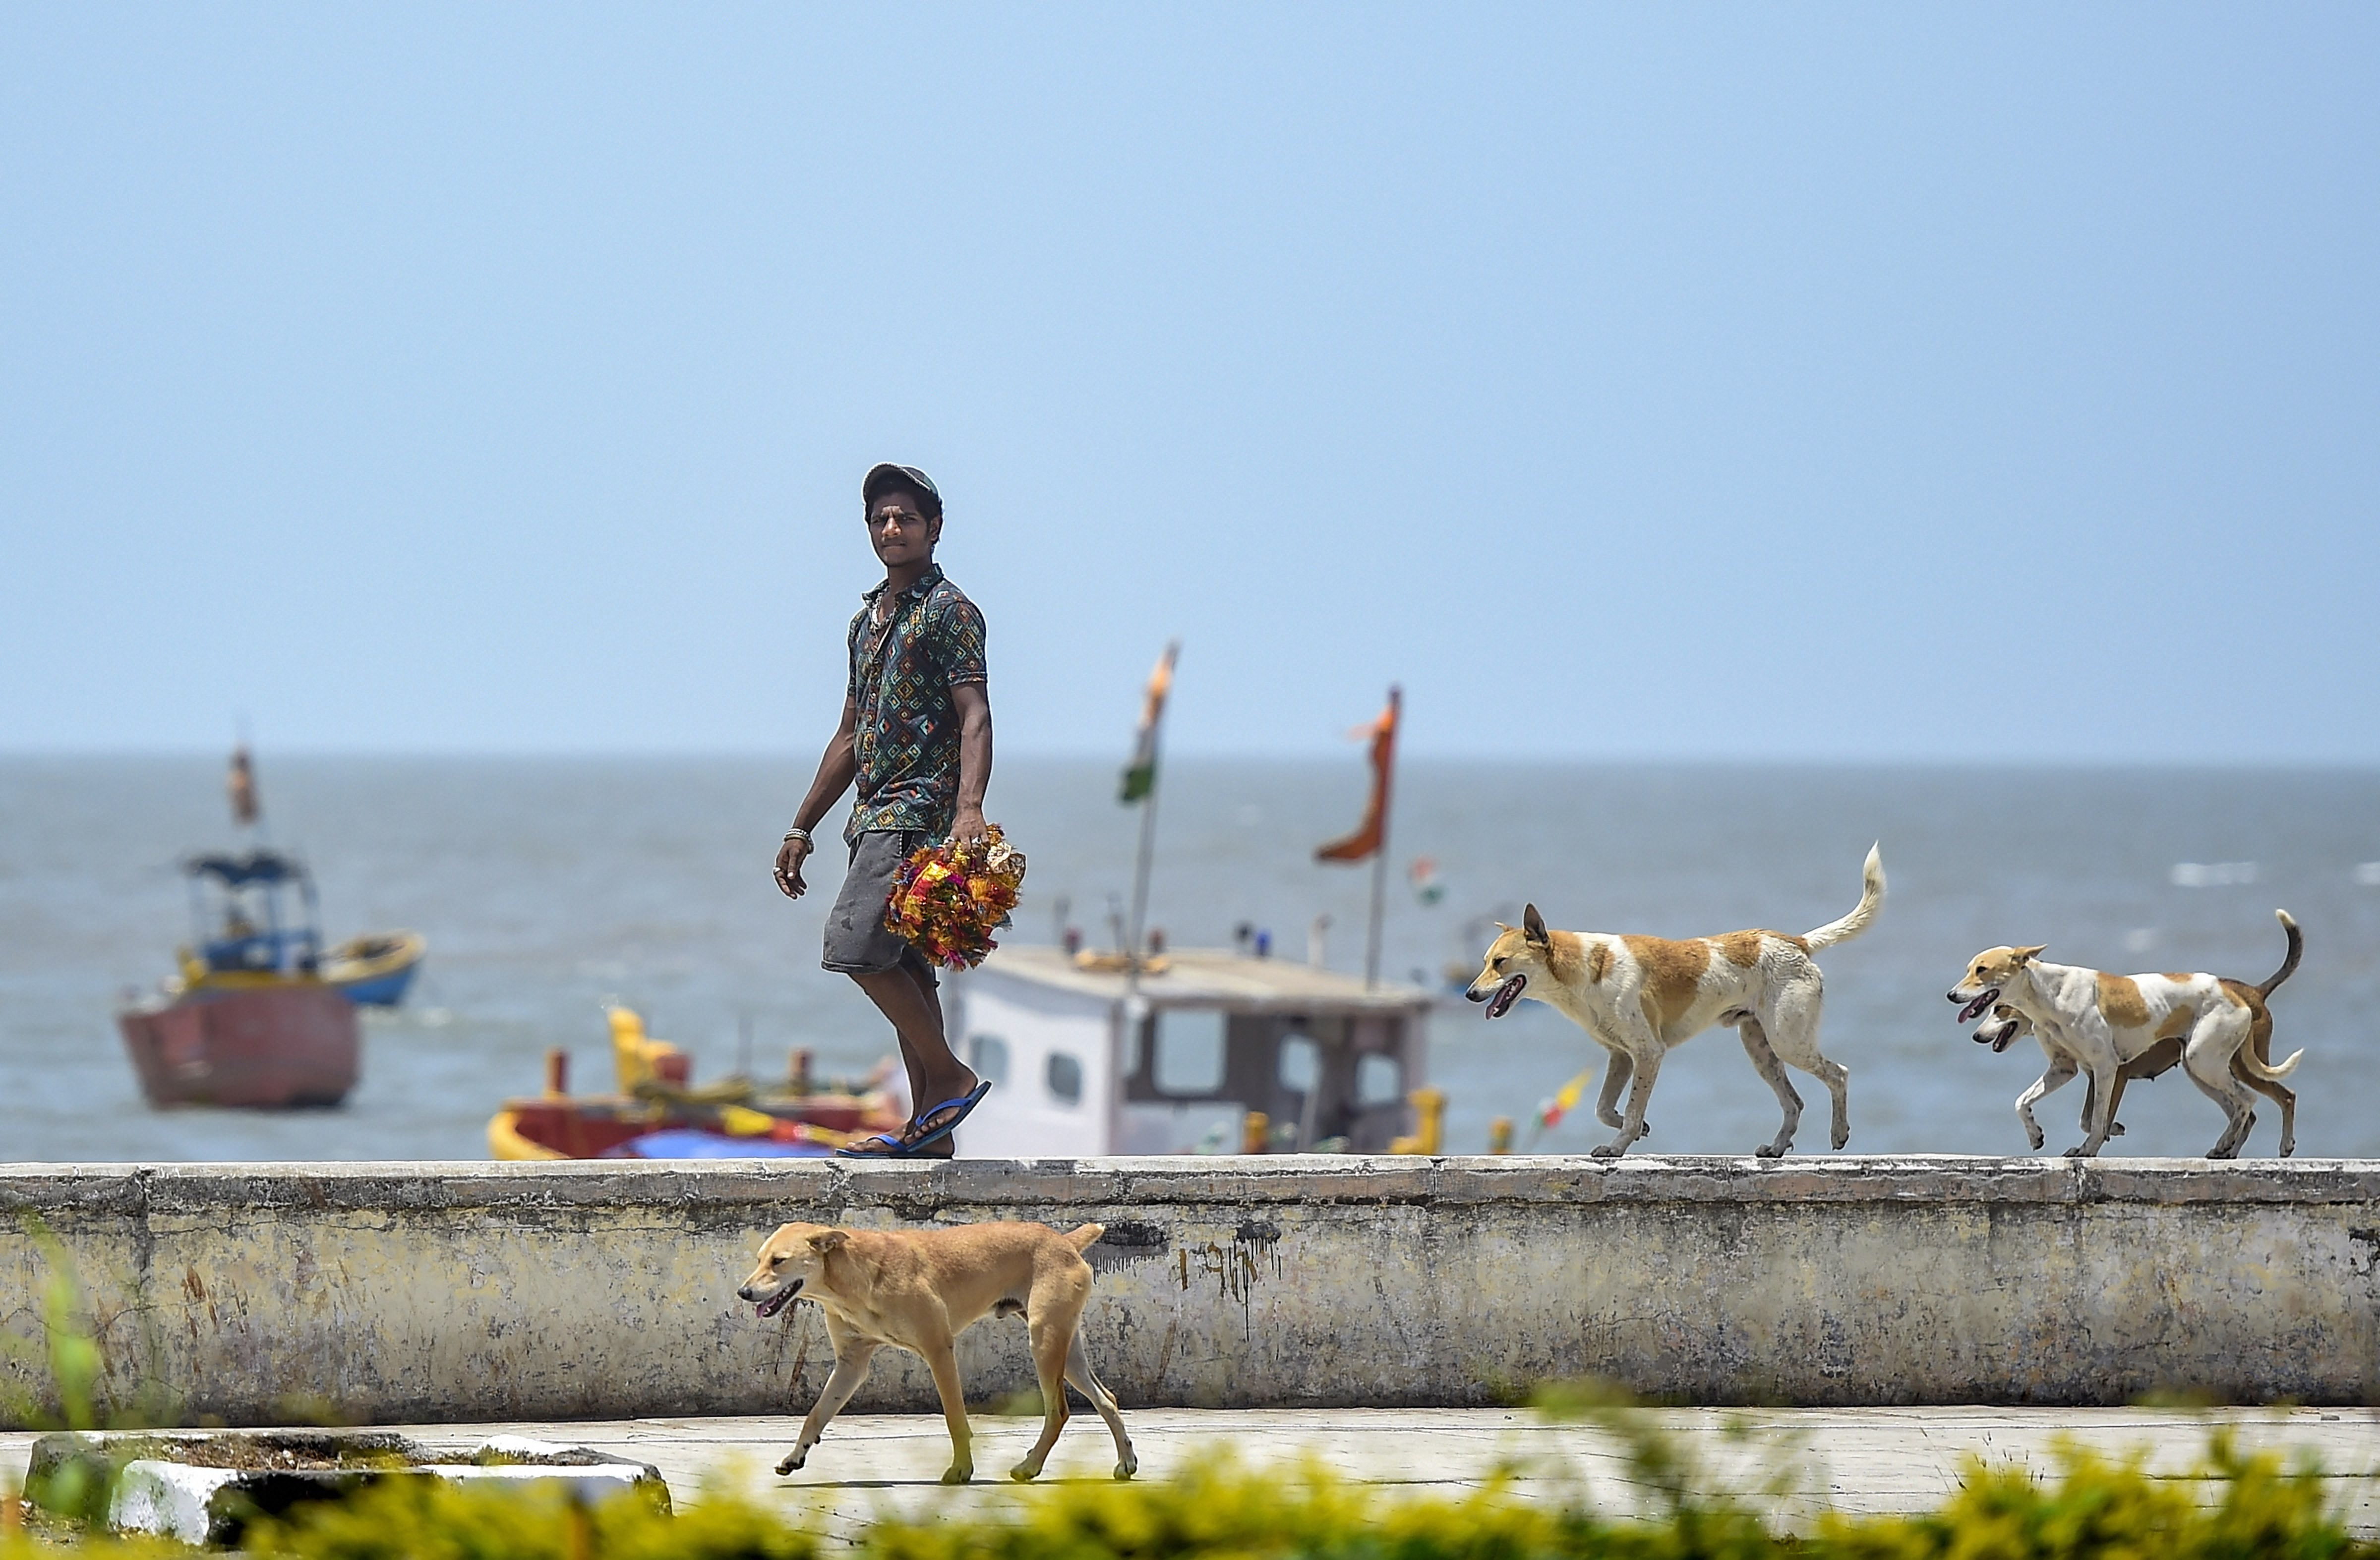 A man walks along a road during the nationwide lockdown, imposed in the wake of the coronavirus pandemic, at Worli in Mumbai, Thursday, April 9, 2020.